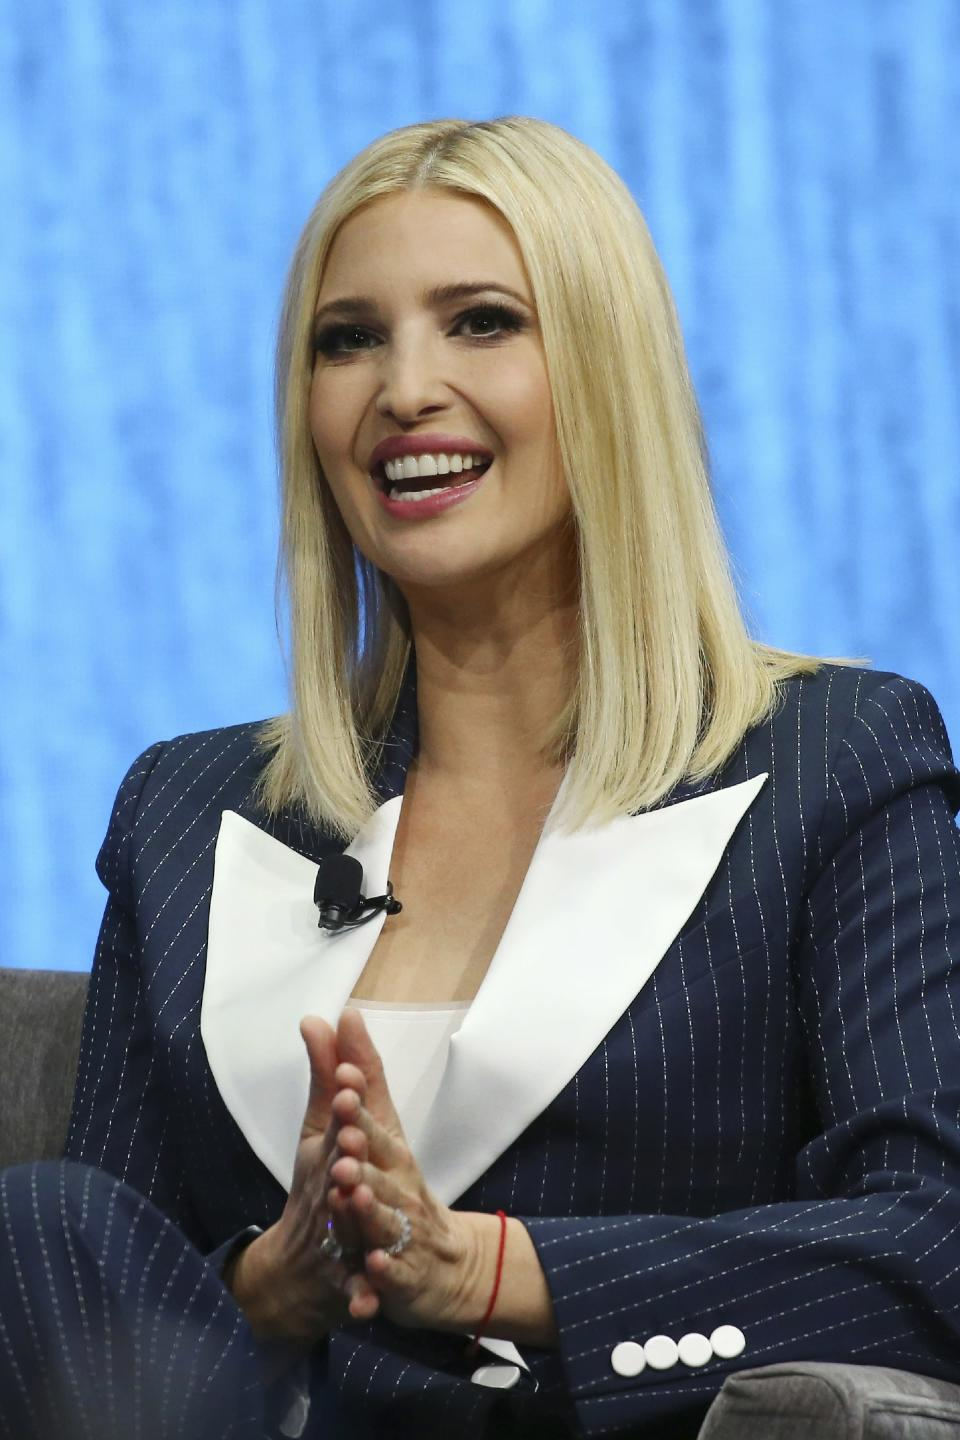 Ivanka Trump, the daughter and senior adviser to U.S. President Donald Trump, answers a question as she is interviewed at the Consumer Technology Association Keynote during the CES tech show Tuesday, Jan. 7, 2020, in Las Vegas. (AP Photo/Ross D. Franklin)